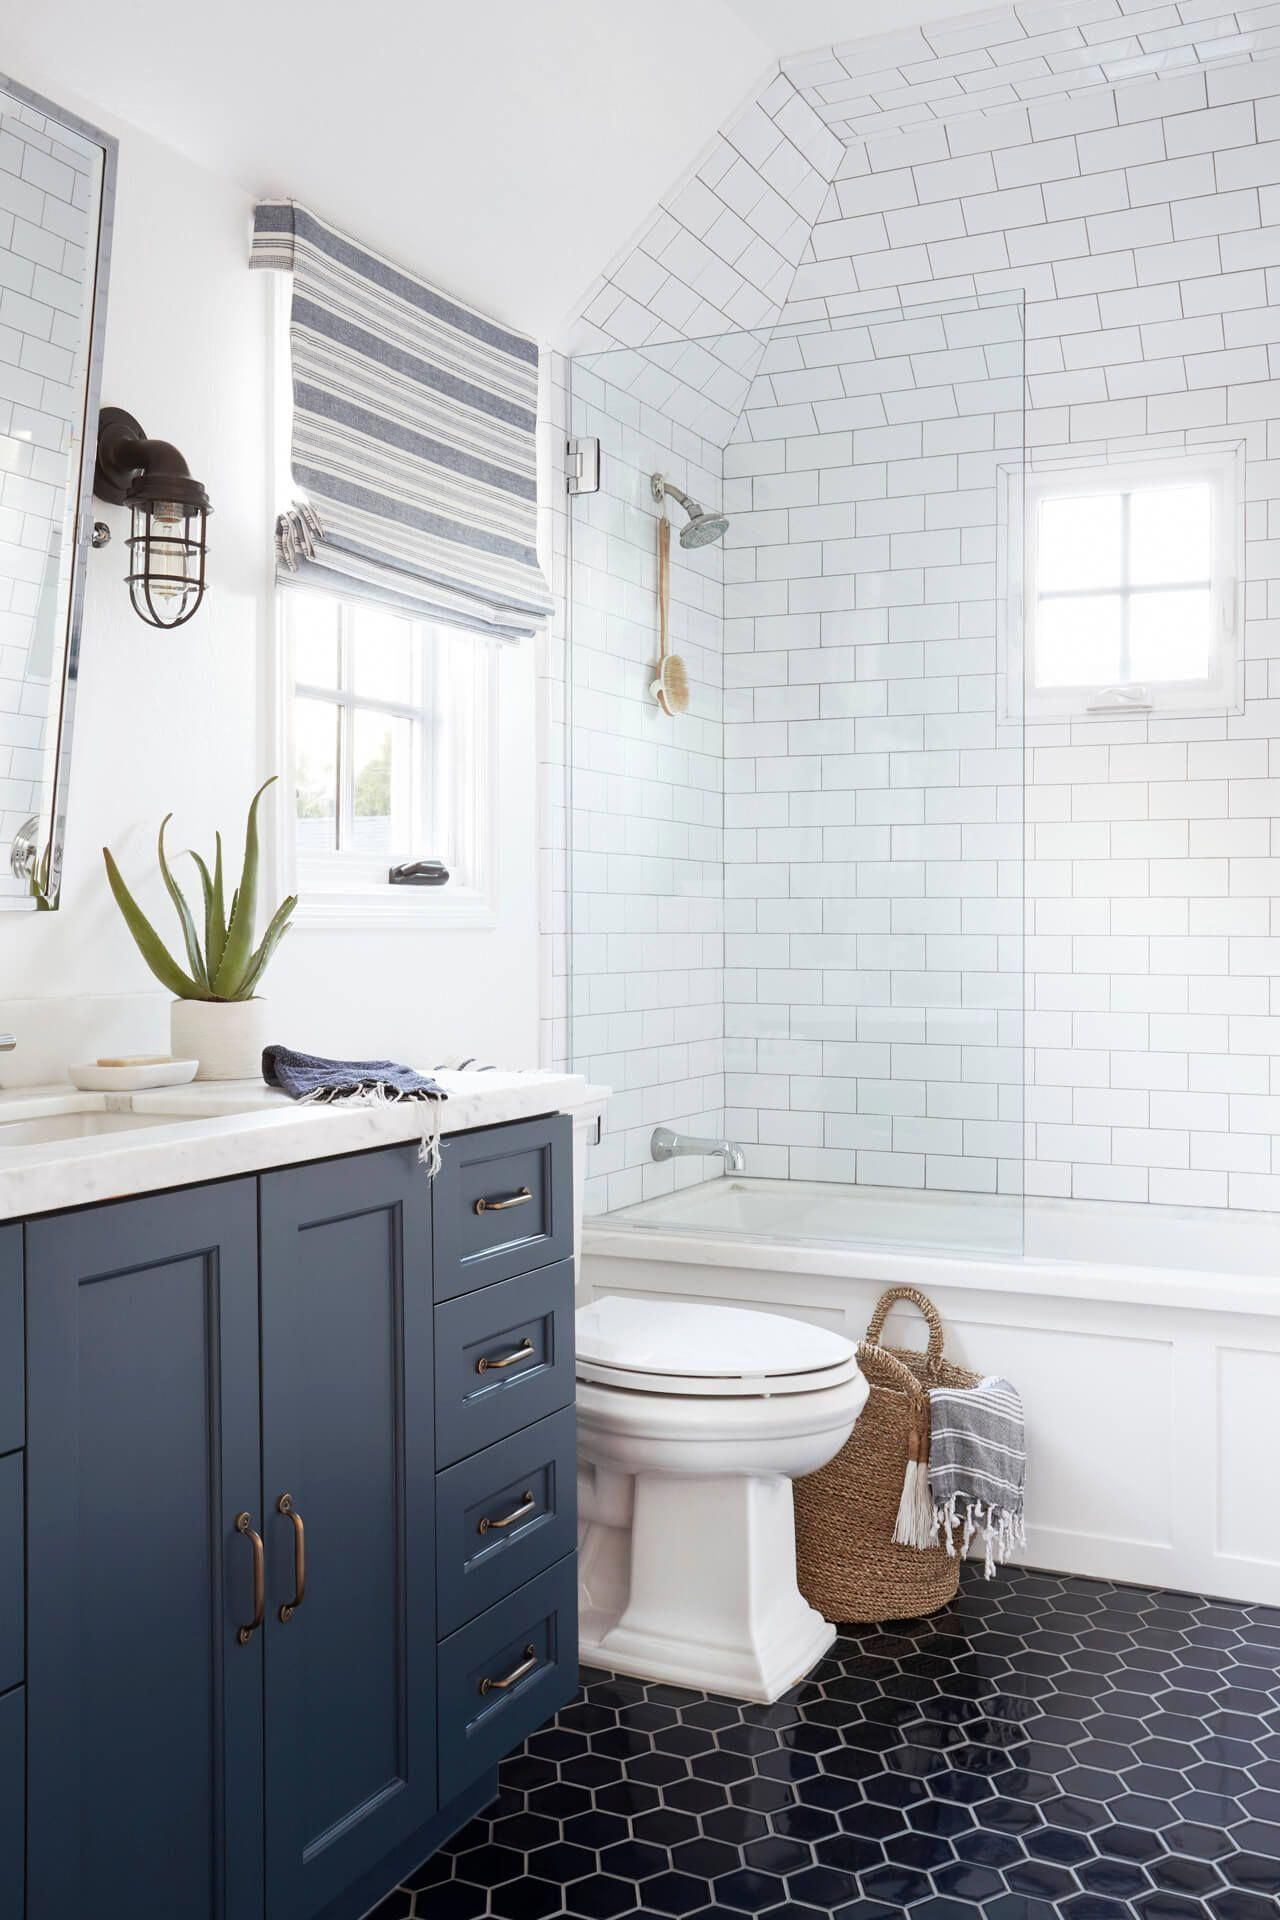 How To Retile A Bathroom A Step By Step Guide Bathroom Top Tile Trends Tile Bathroom